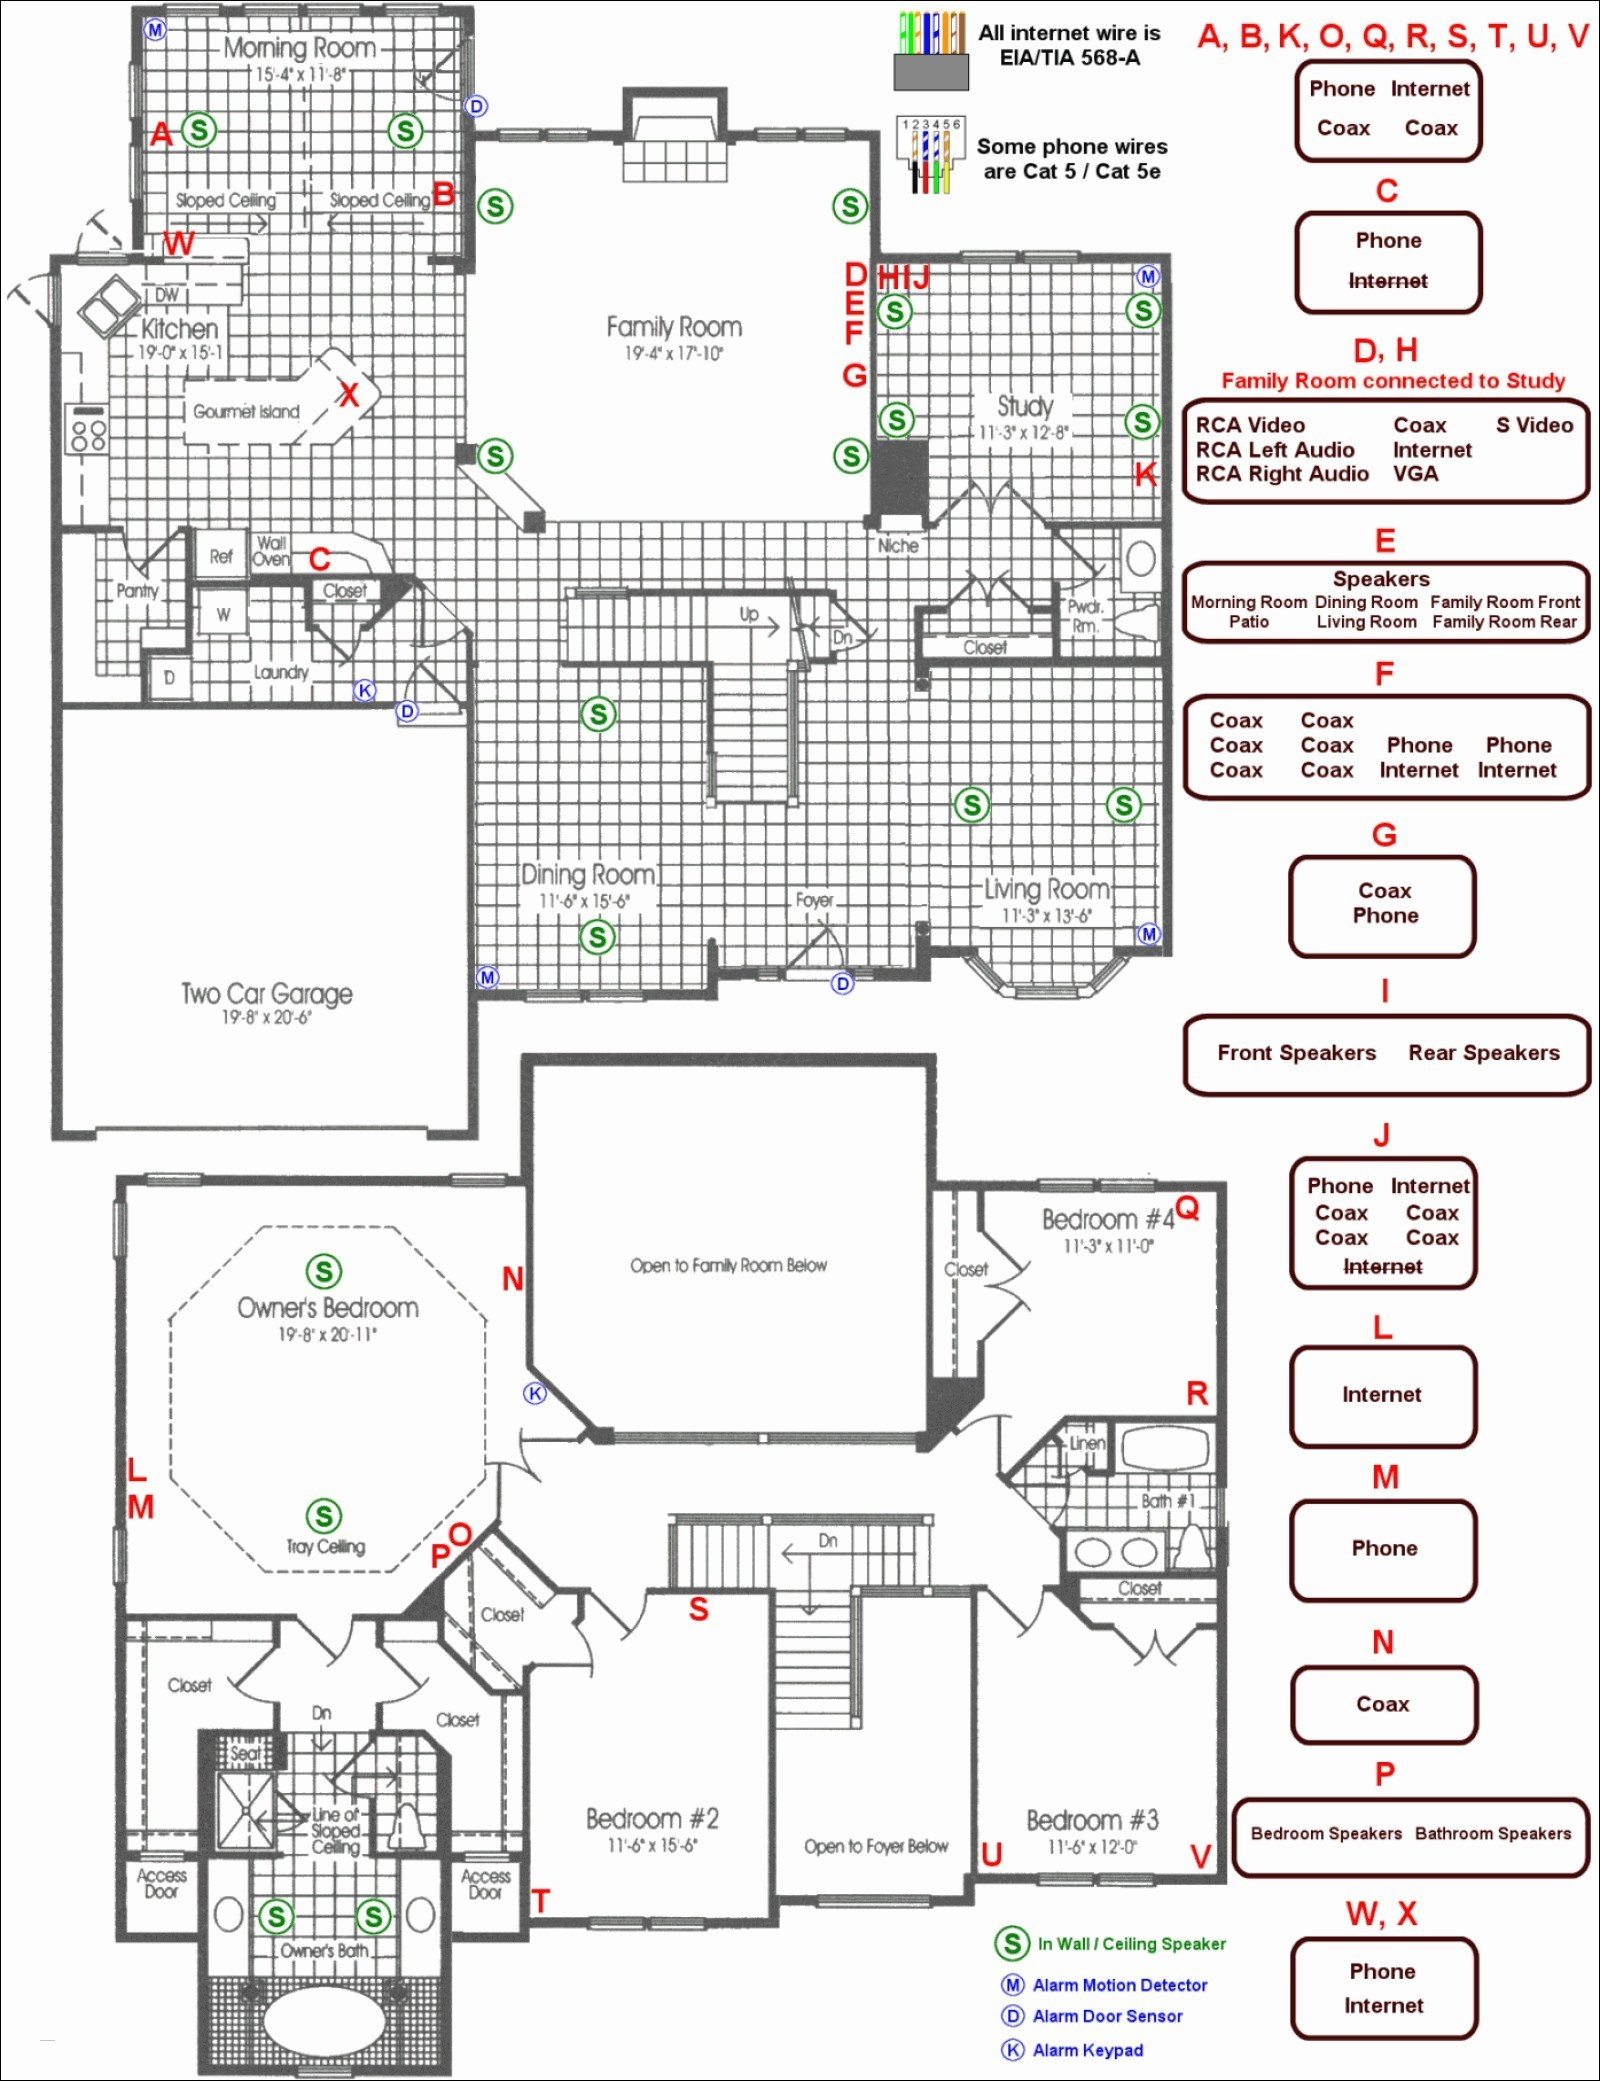 electrical wiring diagram drawing software Download-Wiring Diagram Pics Detail Name wiring diagram drawing software – home 20-r